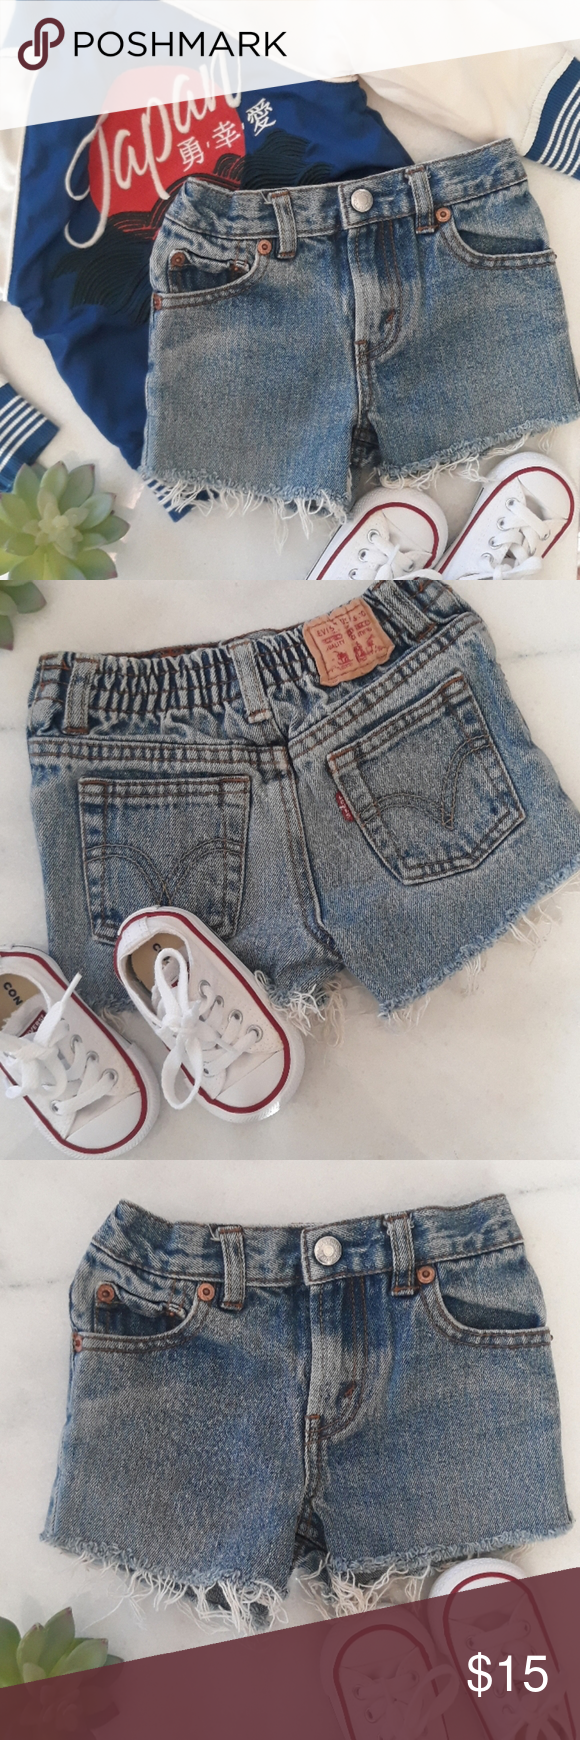 ❤ Levi's Cutoffs Shorts Levi cutoff shorts distressed hem elastic waistband size 18 months in good condition Levi's Bottoms Shorts #denimcutoffshorts ❤ Levi's Cutoffs Shorts Levi cutoff shorts distressed hem elastic waistband size 18 months in good condition Levi's Bottoms Shorts #denimcutoffshorts